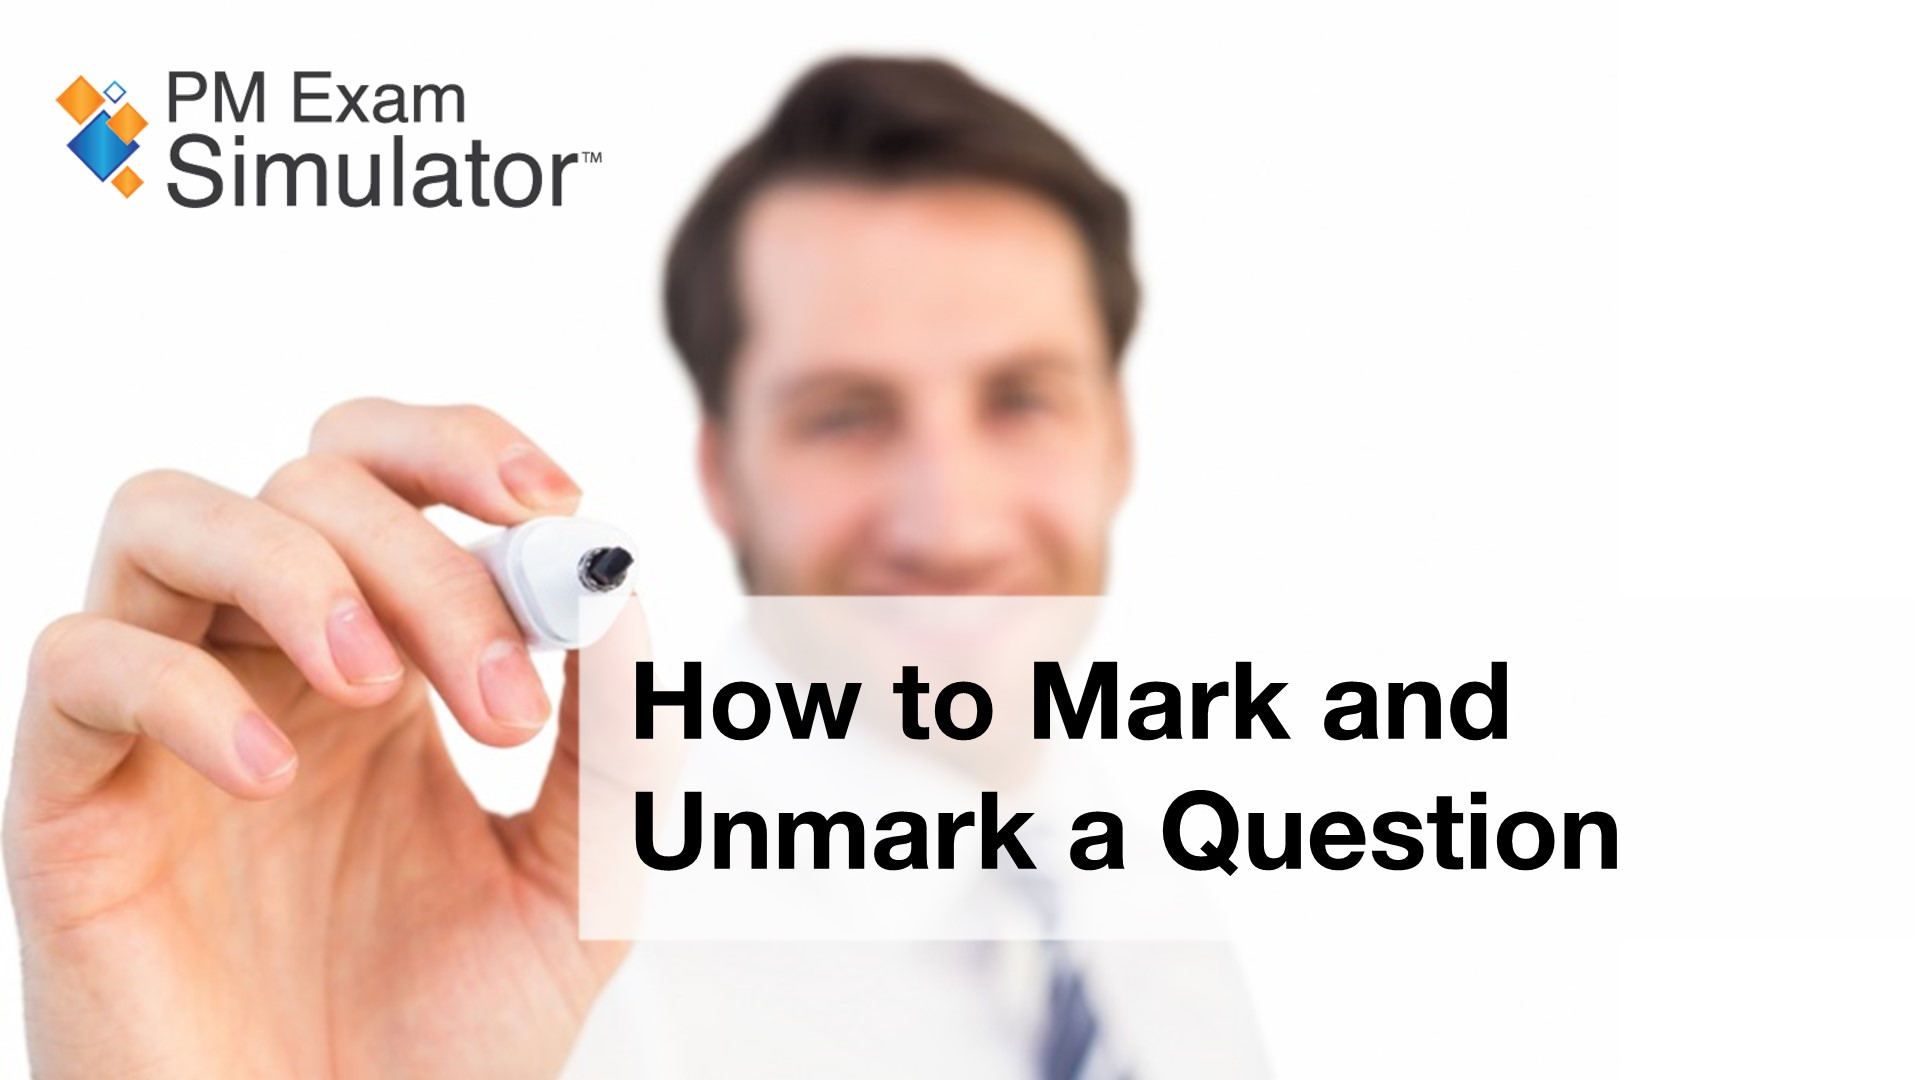 How to Mark and Unmark a Question